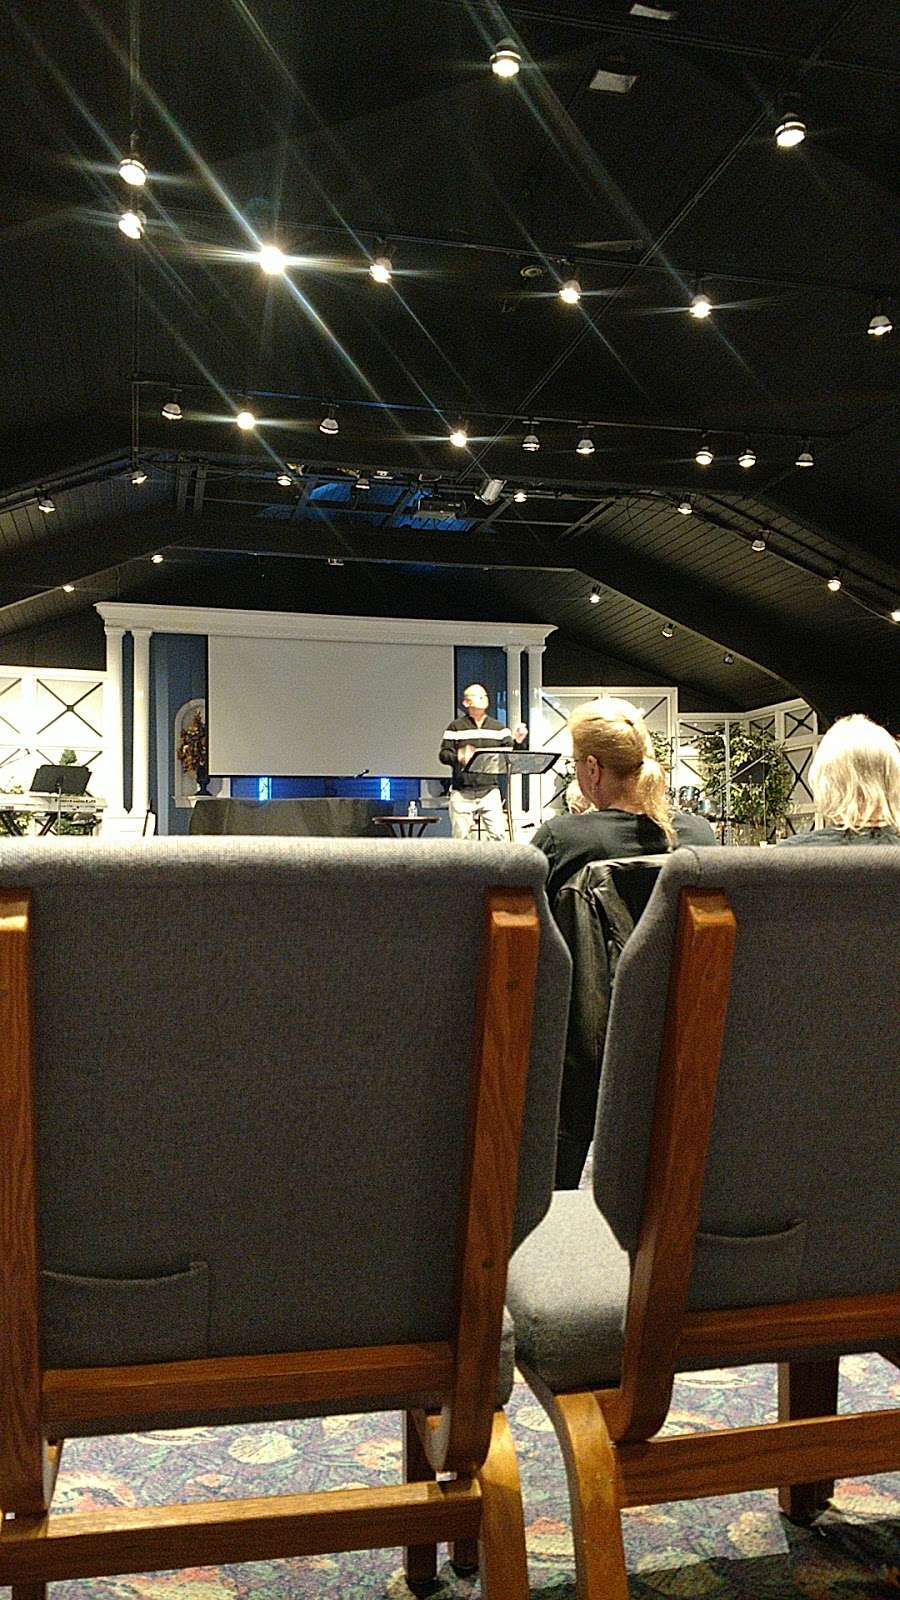 Church On the Rock - church  | Photo 6 of 10 | Address: 649 Old Mill Rd, Millersville, MD 21108, USA | Phone: (410) 987-4714